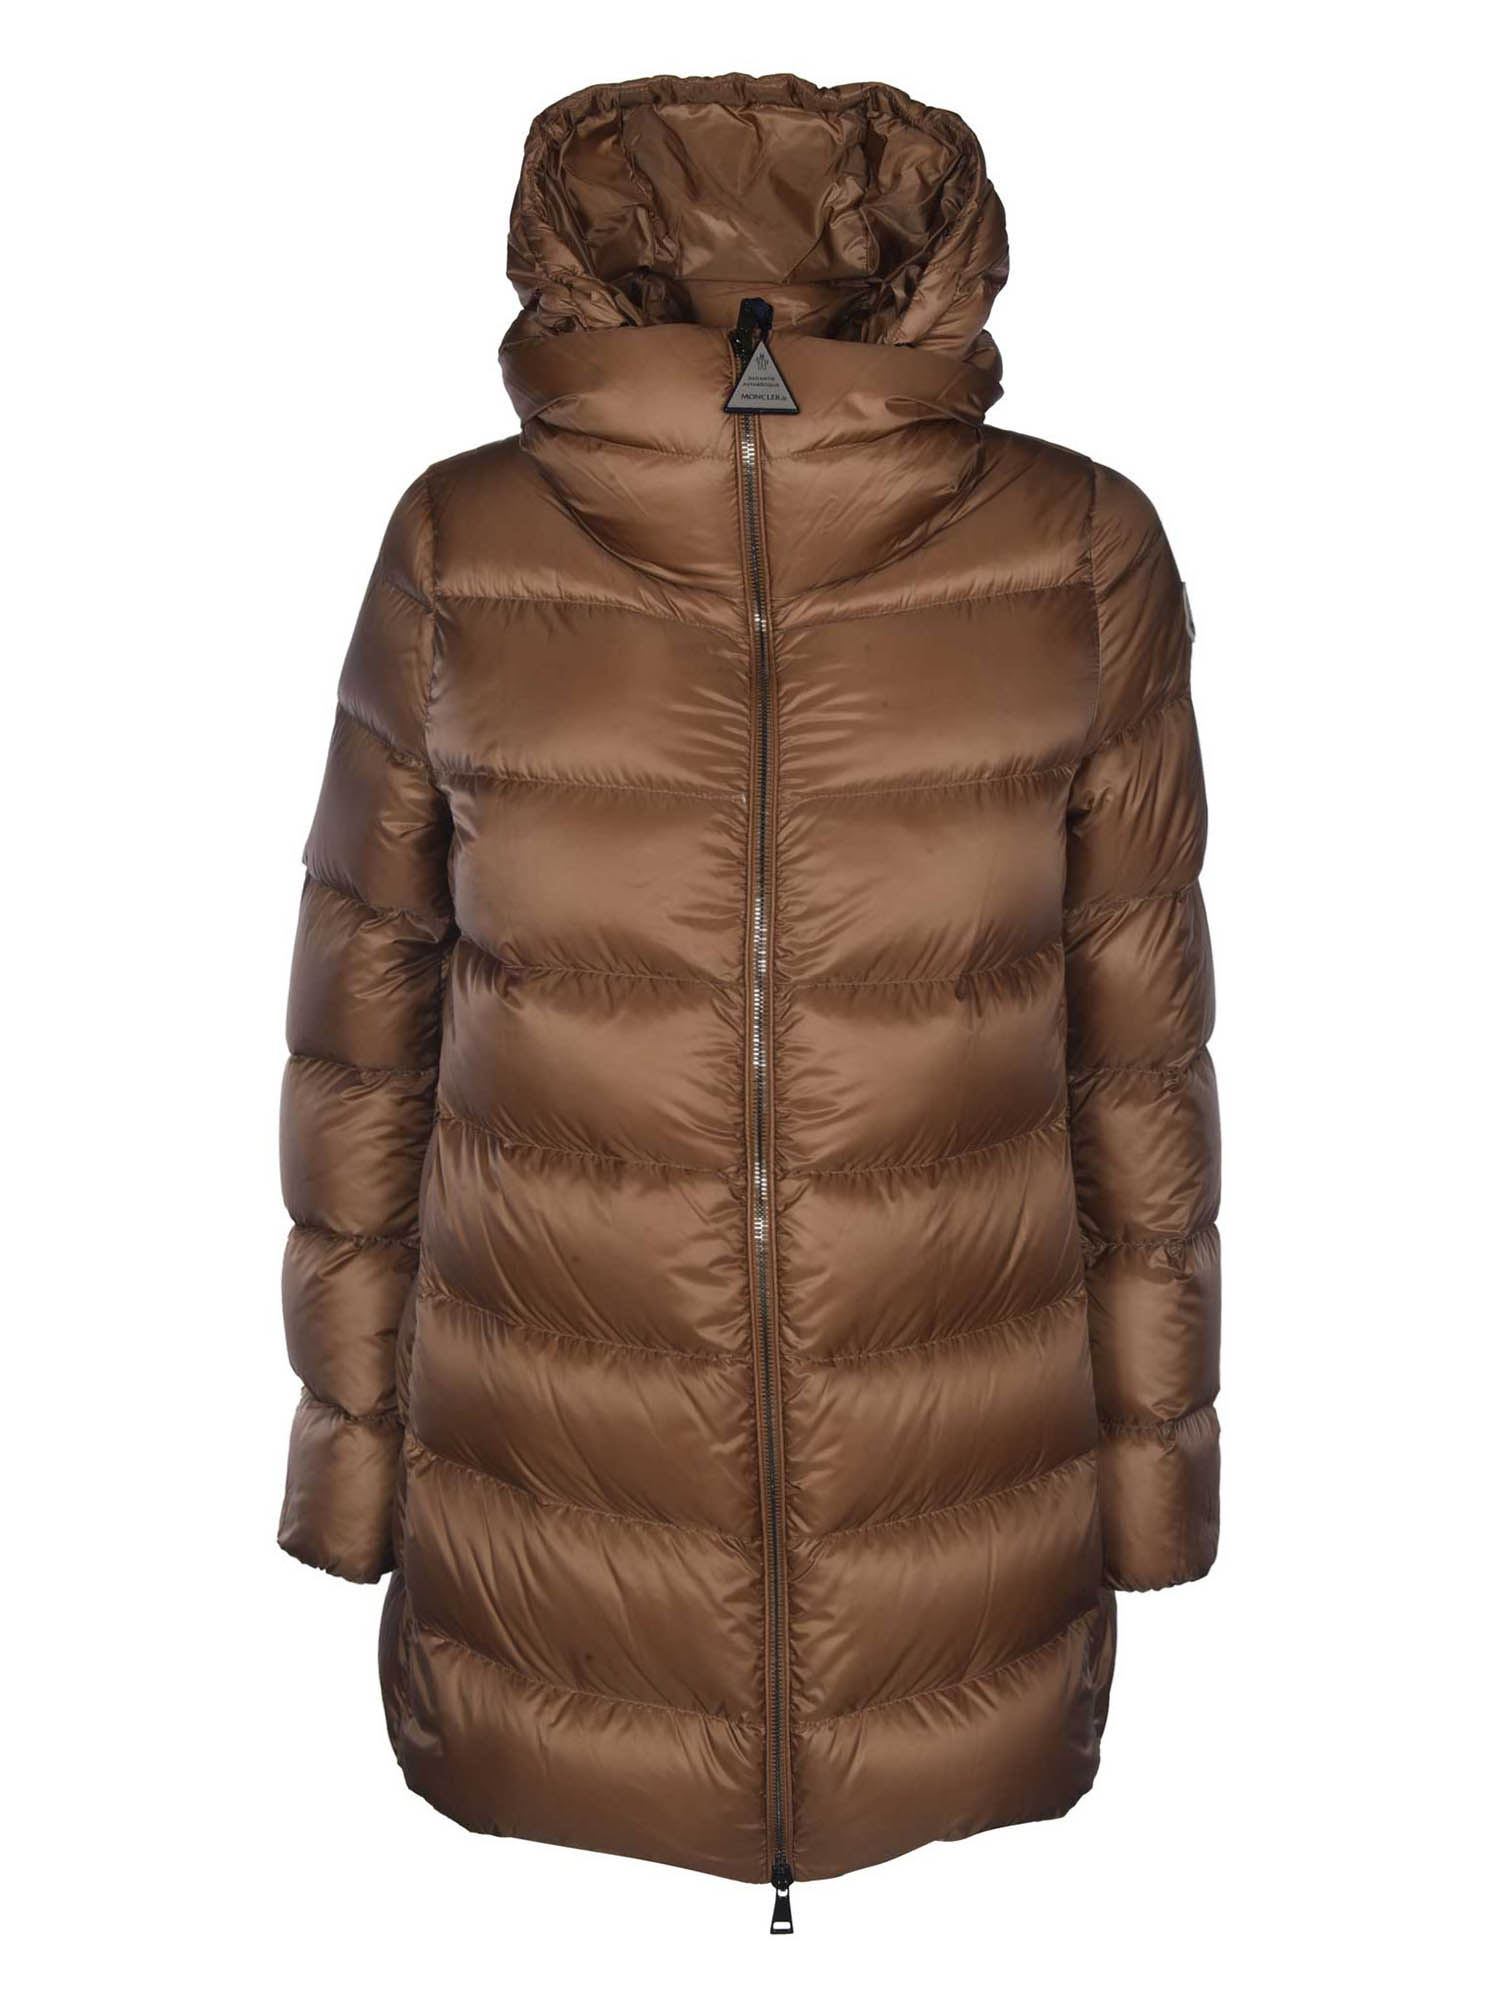 Moncler ANGE DOWN JACKET IN BROWN